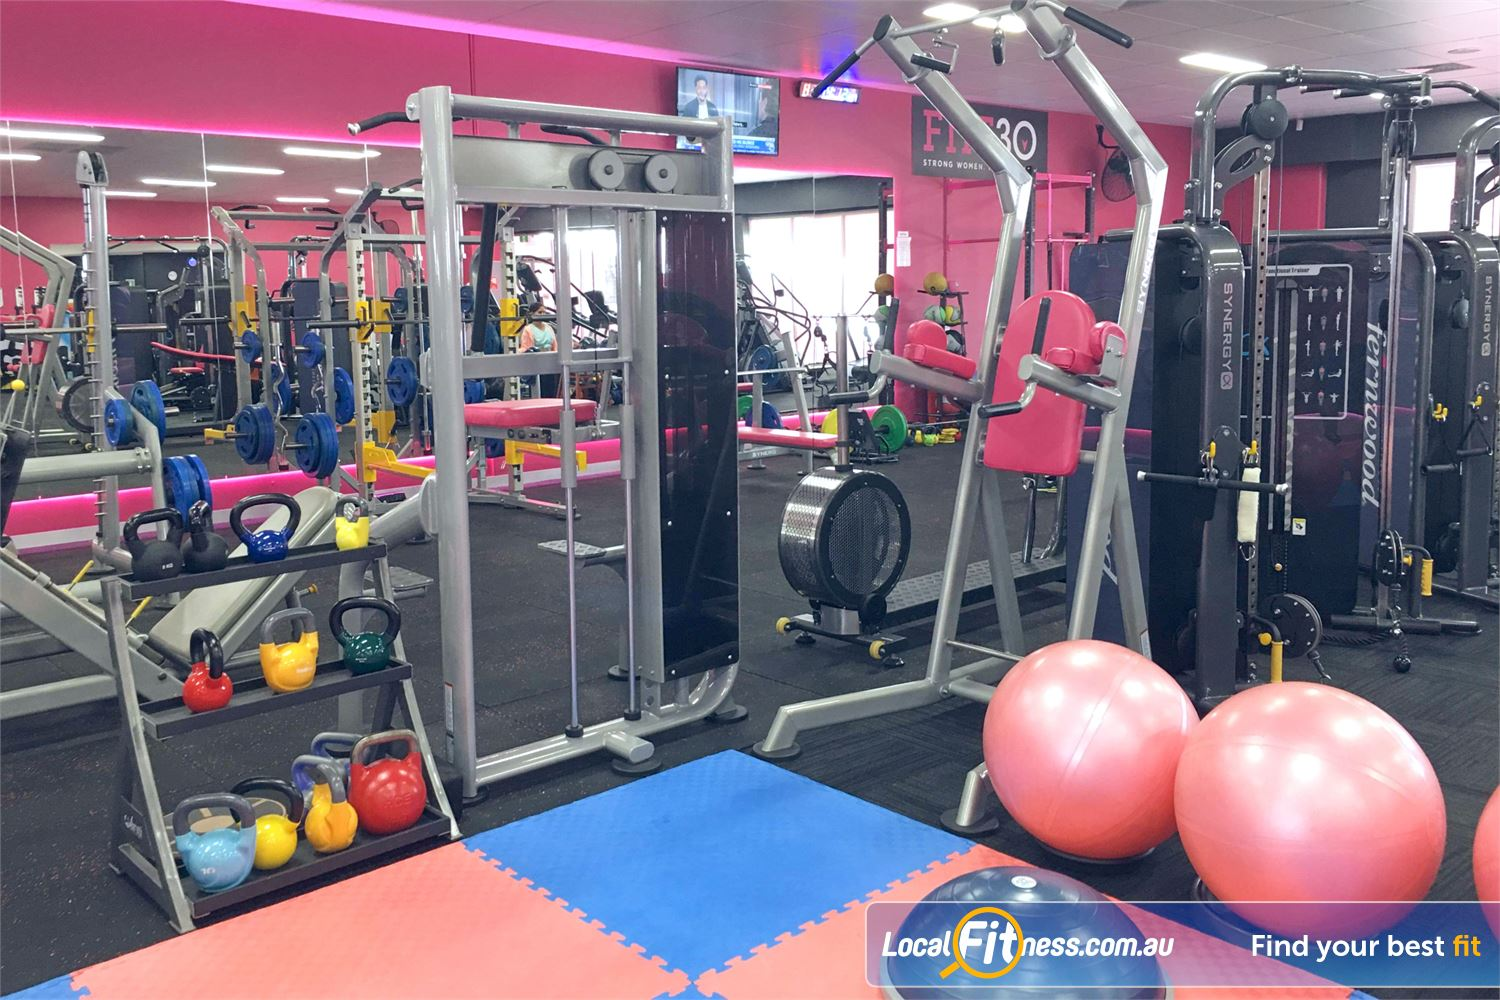 Fernwood Fitness Robina Our free-weights area in our Robina gym includes kettlebells and more.